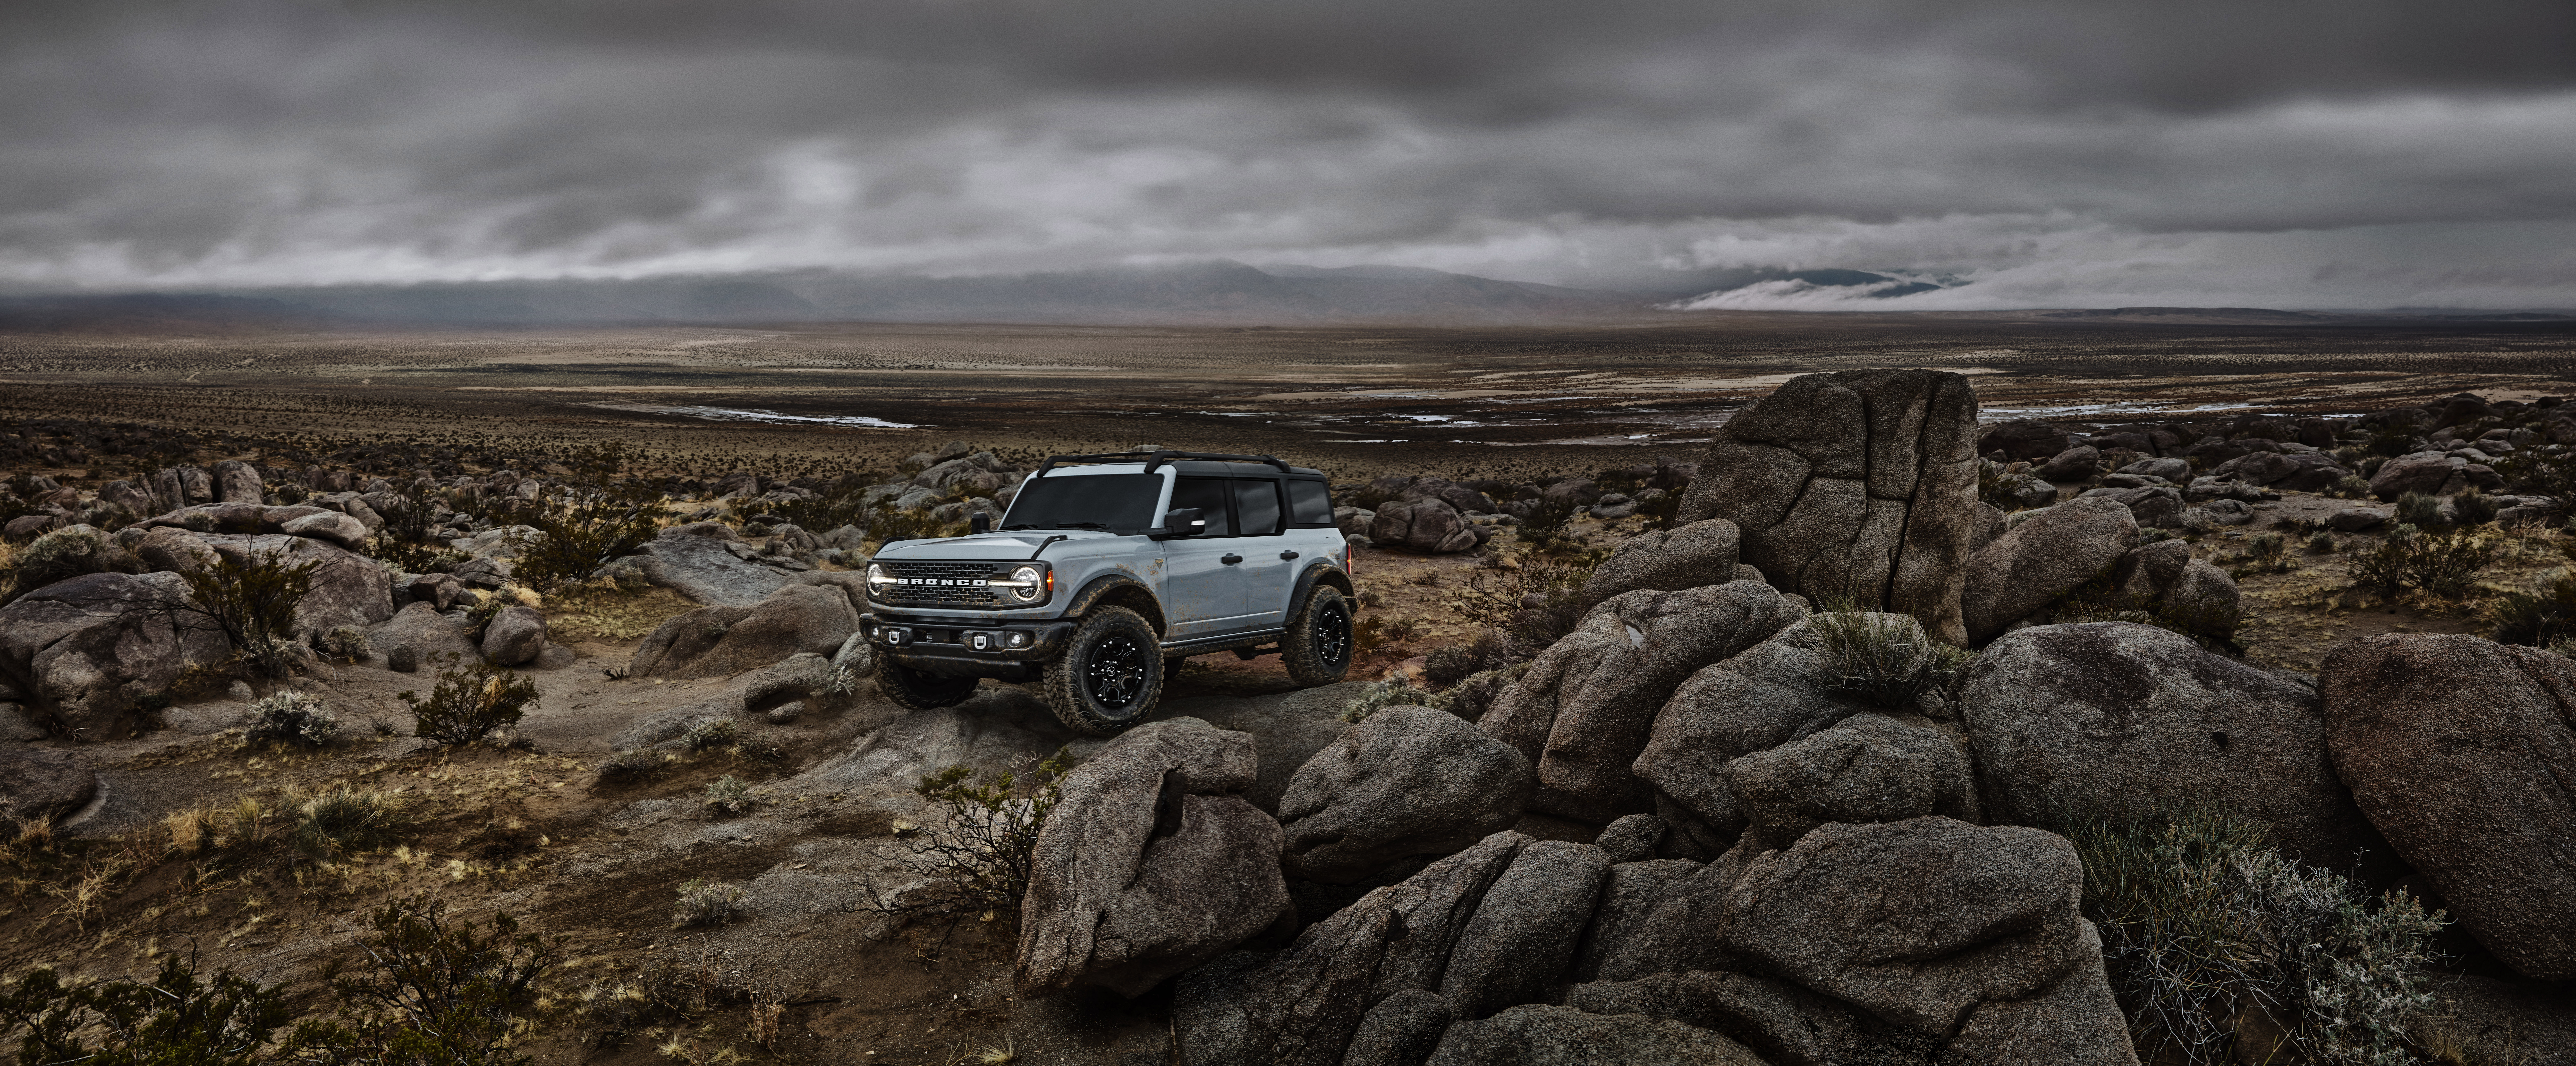 Sixth-generation Ford Bronco debuts – two EcoBoost petrols, removable panels and washable interior Image #1145073